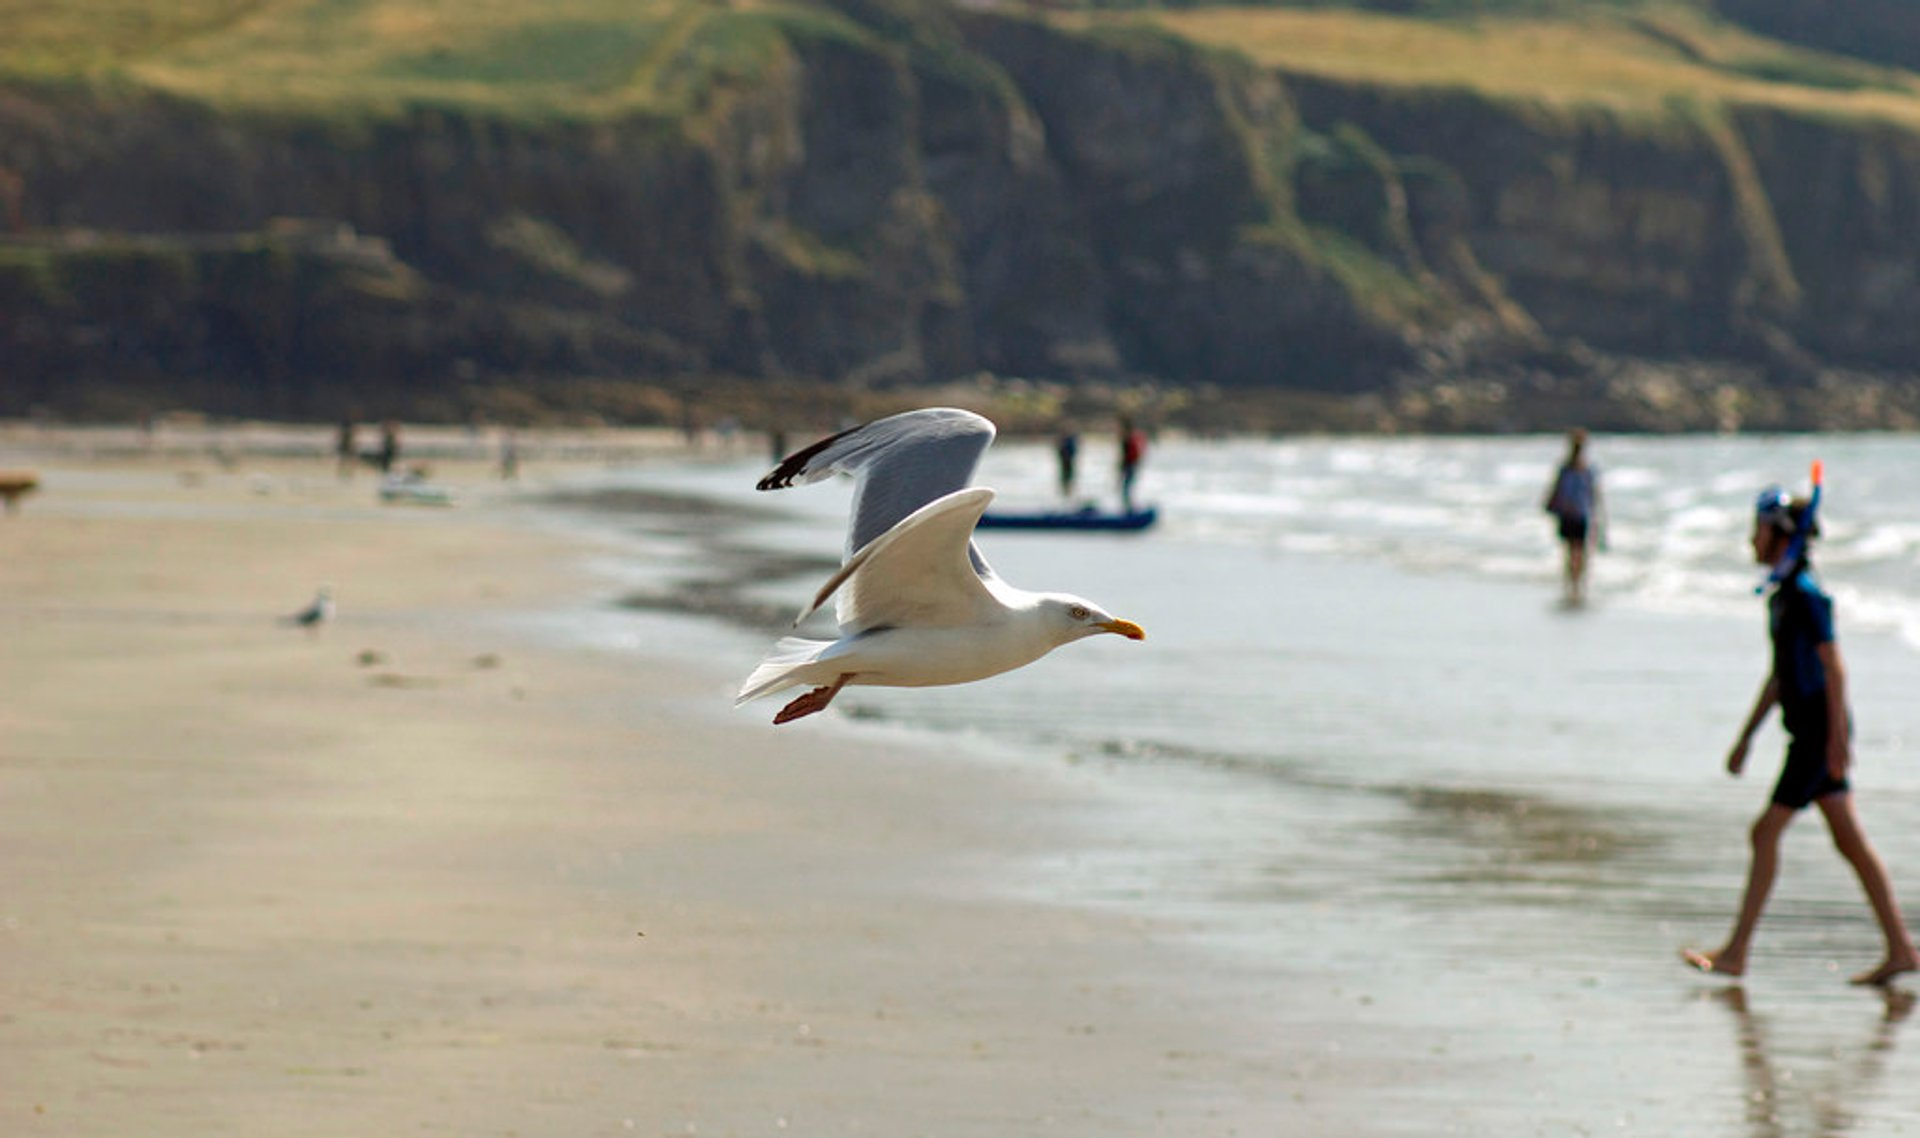 Seagull in Pembrokeshire, Wales 2020